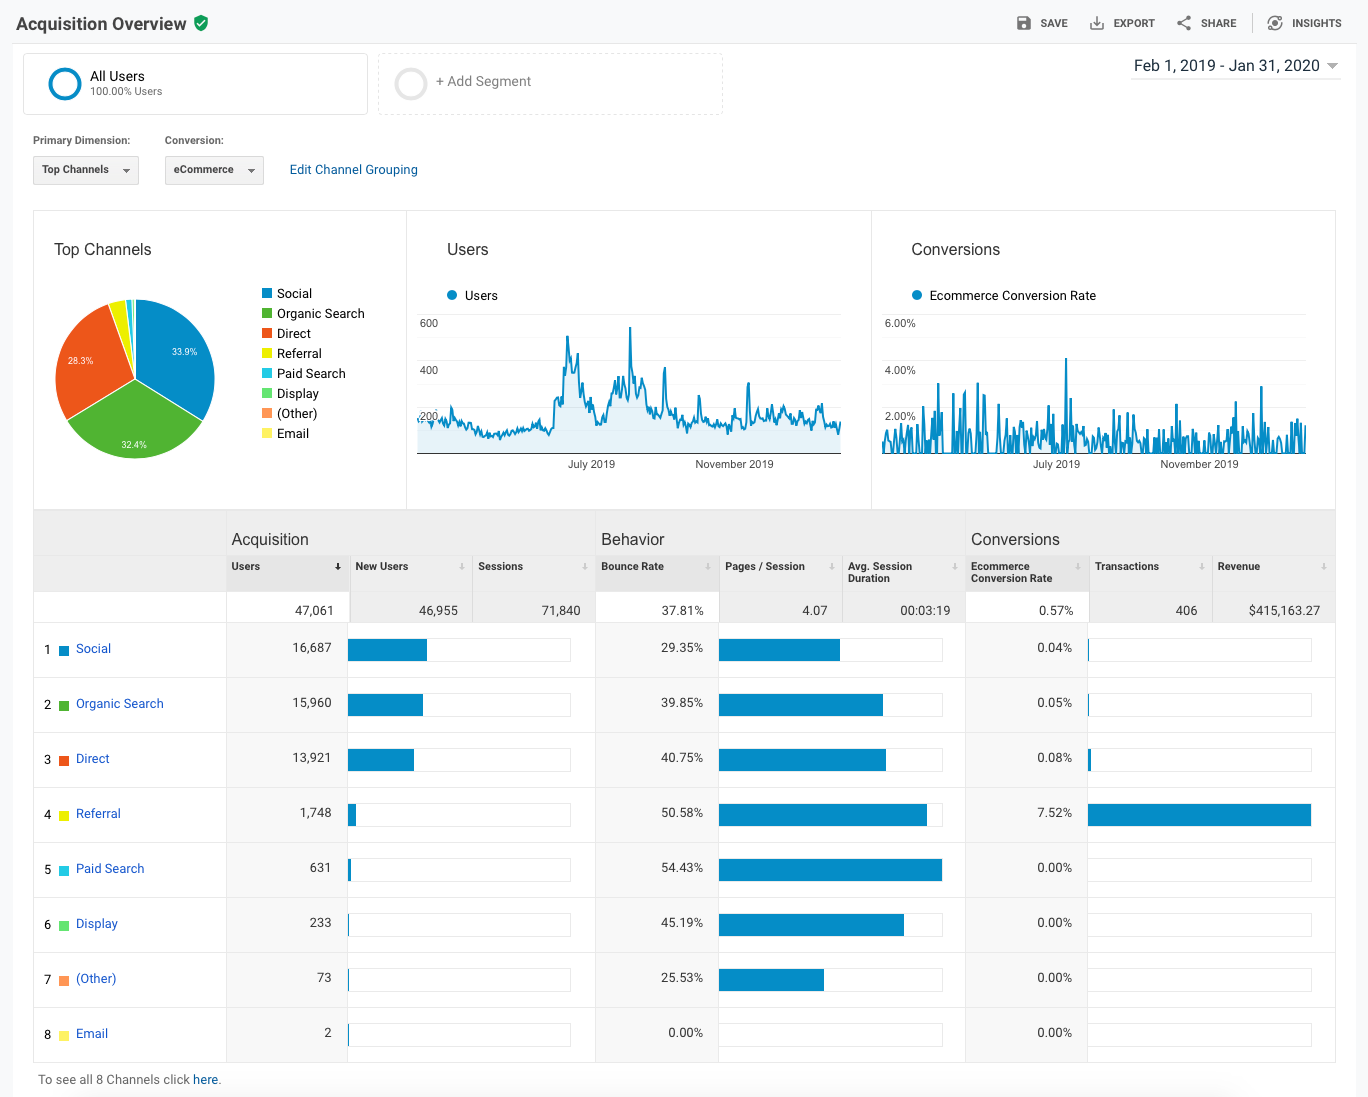 Google Analytics Acquisition Overview Report - Feb19 - Jan20